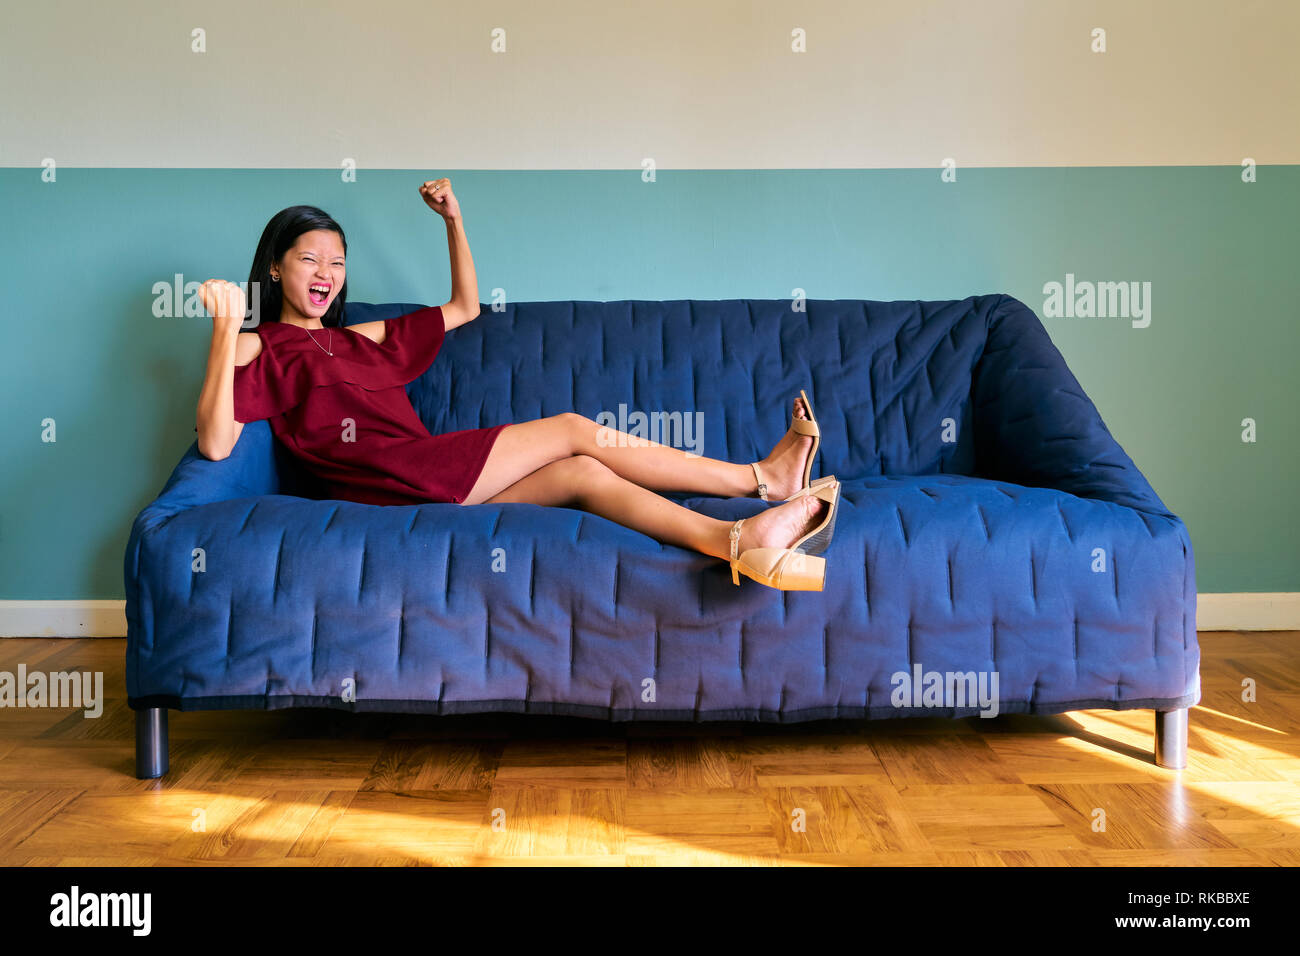 Beautiful woman posing - attractive young woman yelling celebrating victory sitting on sofa - Stock Image